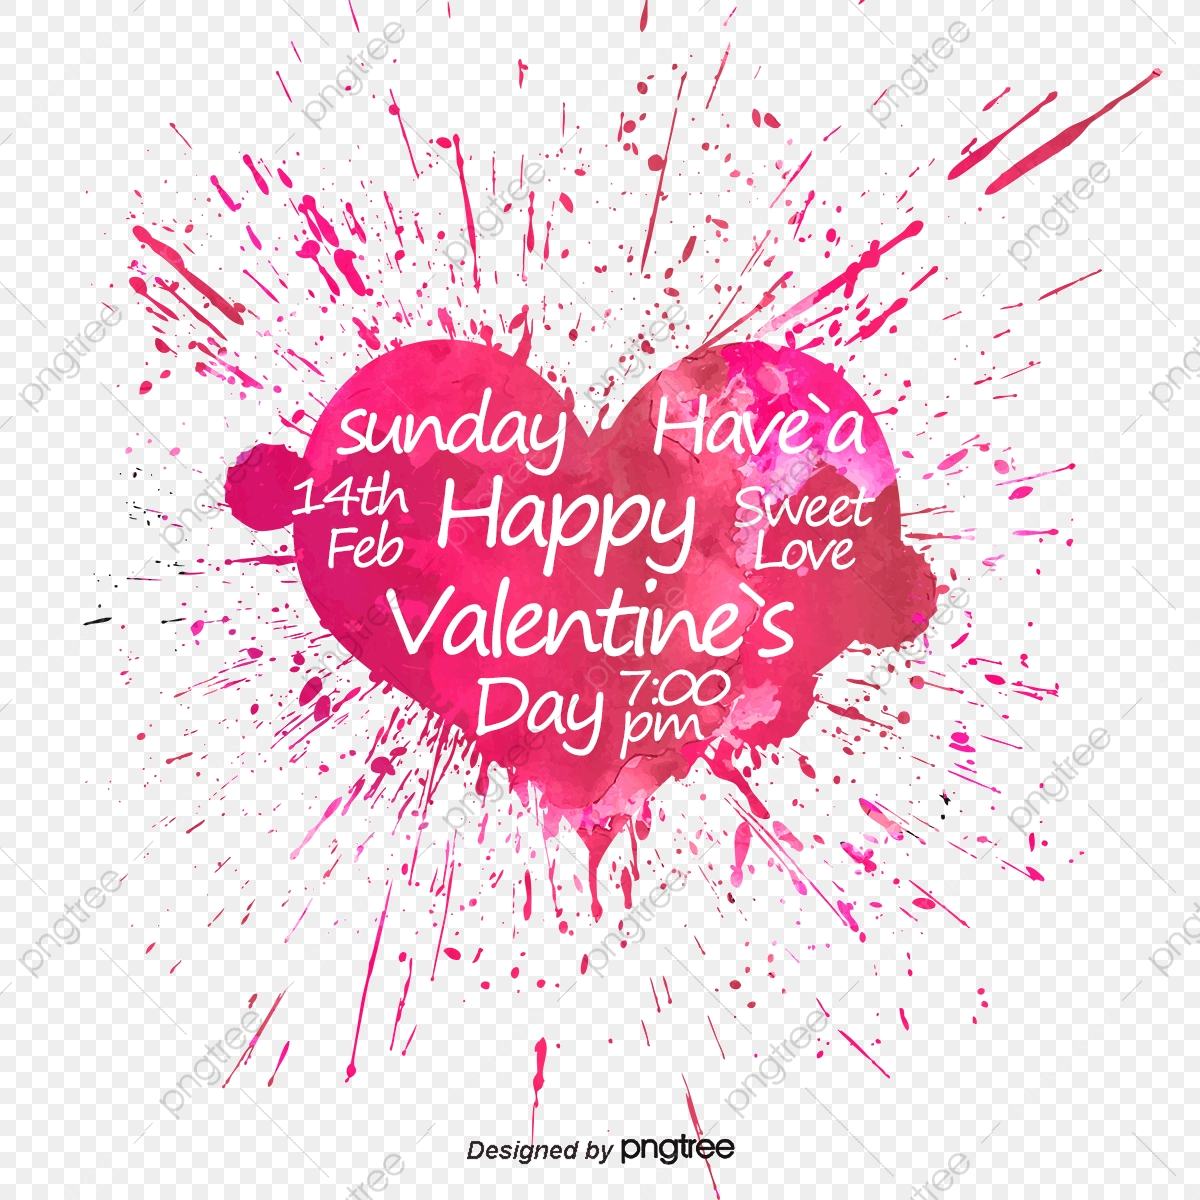 Valentines Day Watercolor Clipart Love Hand Painted Valentine Day Free Commercial Use Digital Art PNG Hearts Wedding DIY Invites